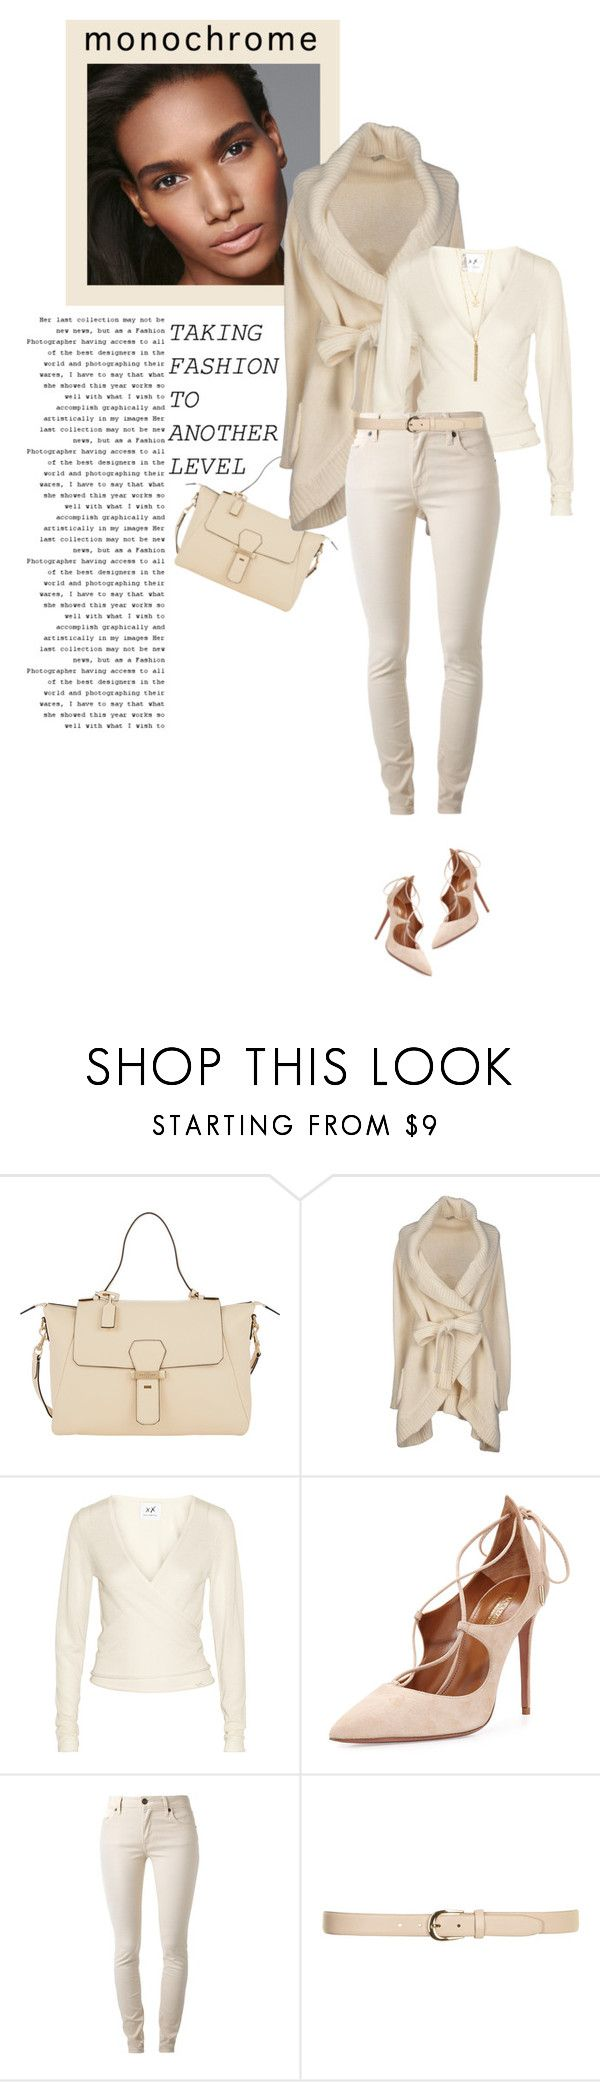 """One Color, Head to Toe"" by marion-fashionista-diva-miller ❤ liked on Polyvore featuring Smythson, H&M, Le Ragazze Di St. Barth, Banjo & Matilda, Aquazzura, Burberry, Dorothy Perkins, BERRICLE and monochrome"